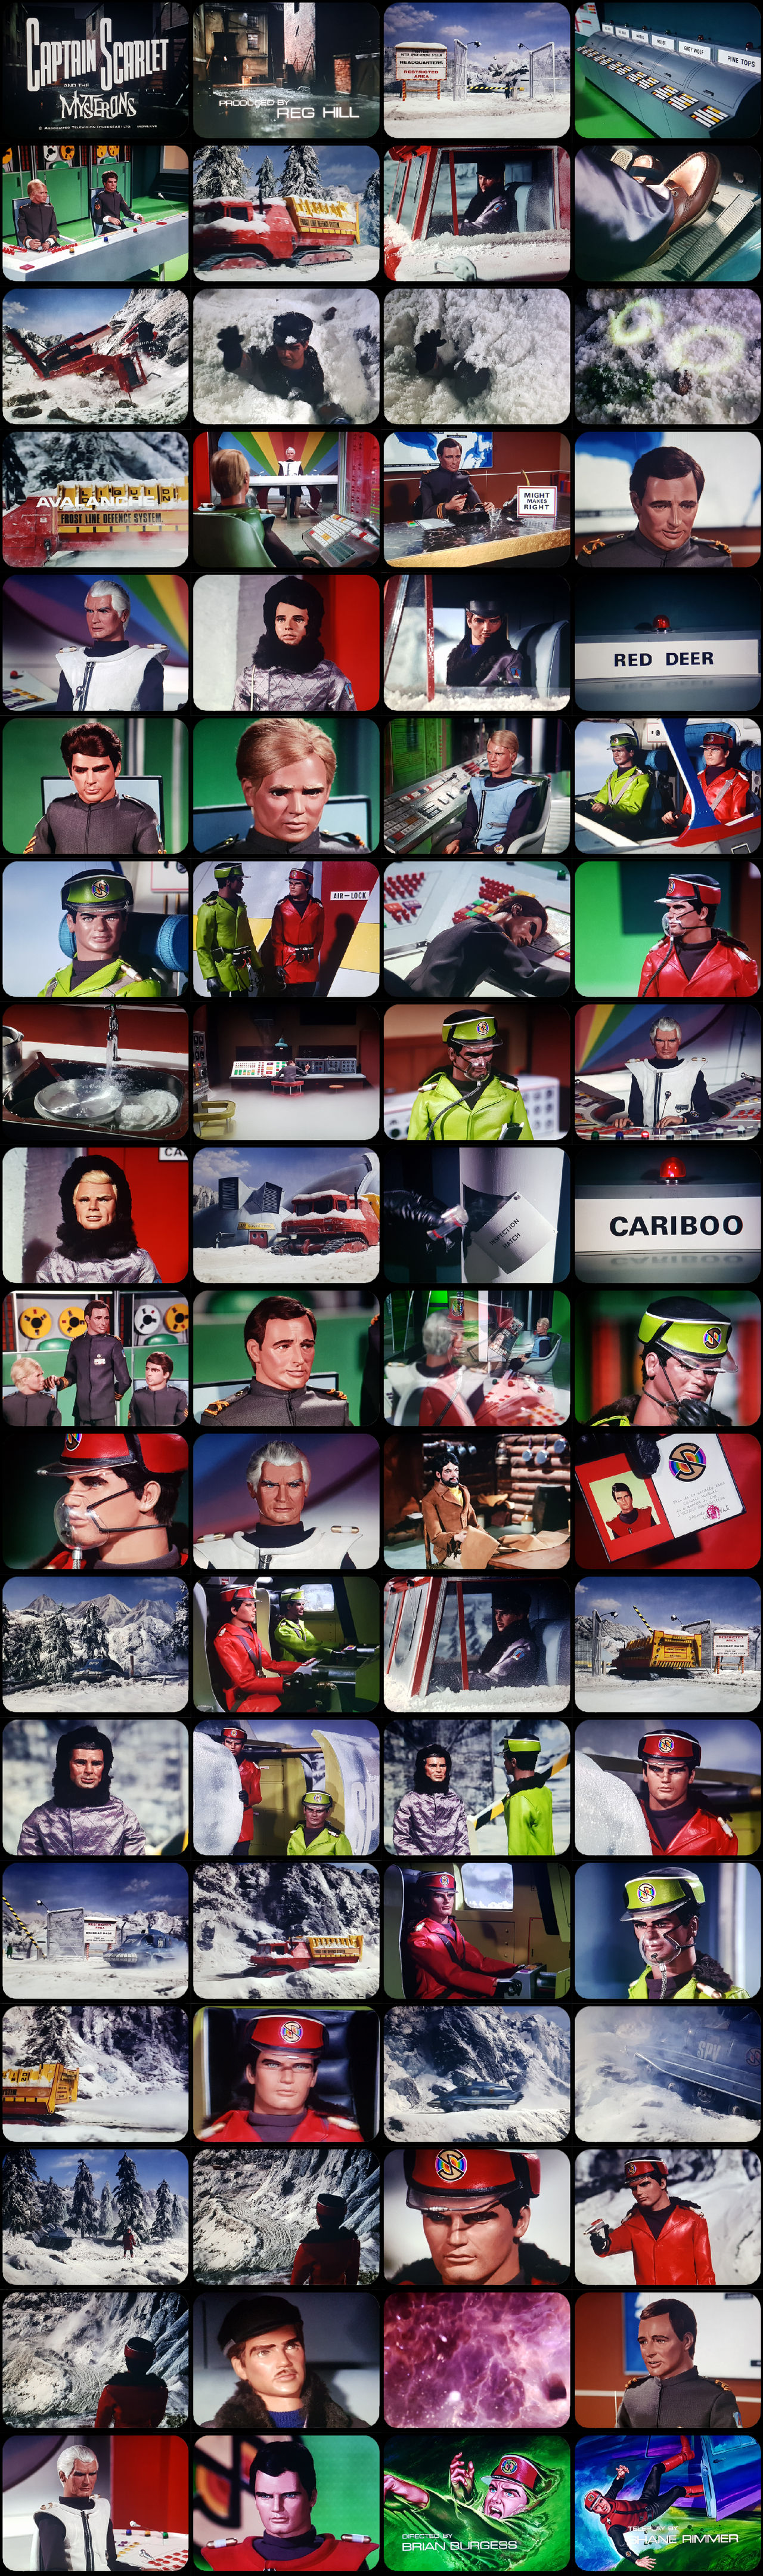 Captain Scarlet Episode 11 Tele-Snaps (REDONE)